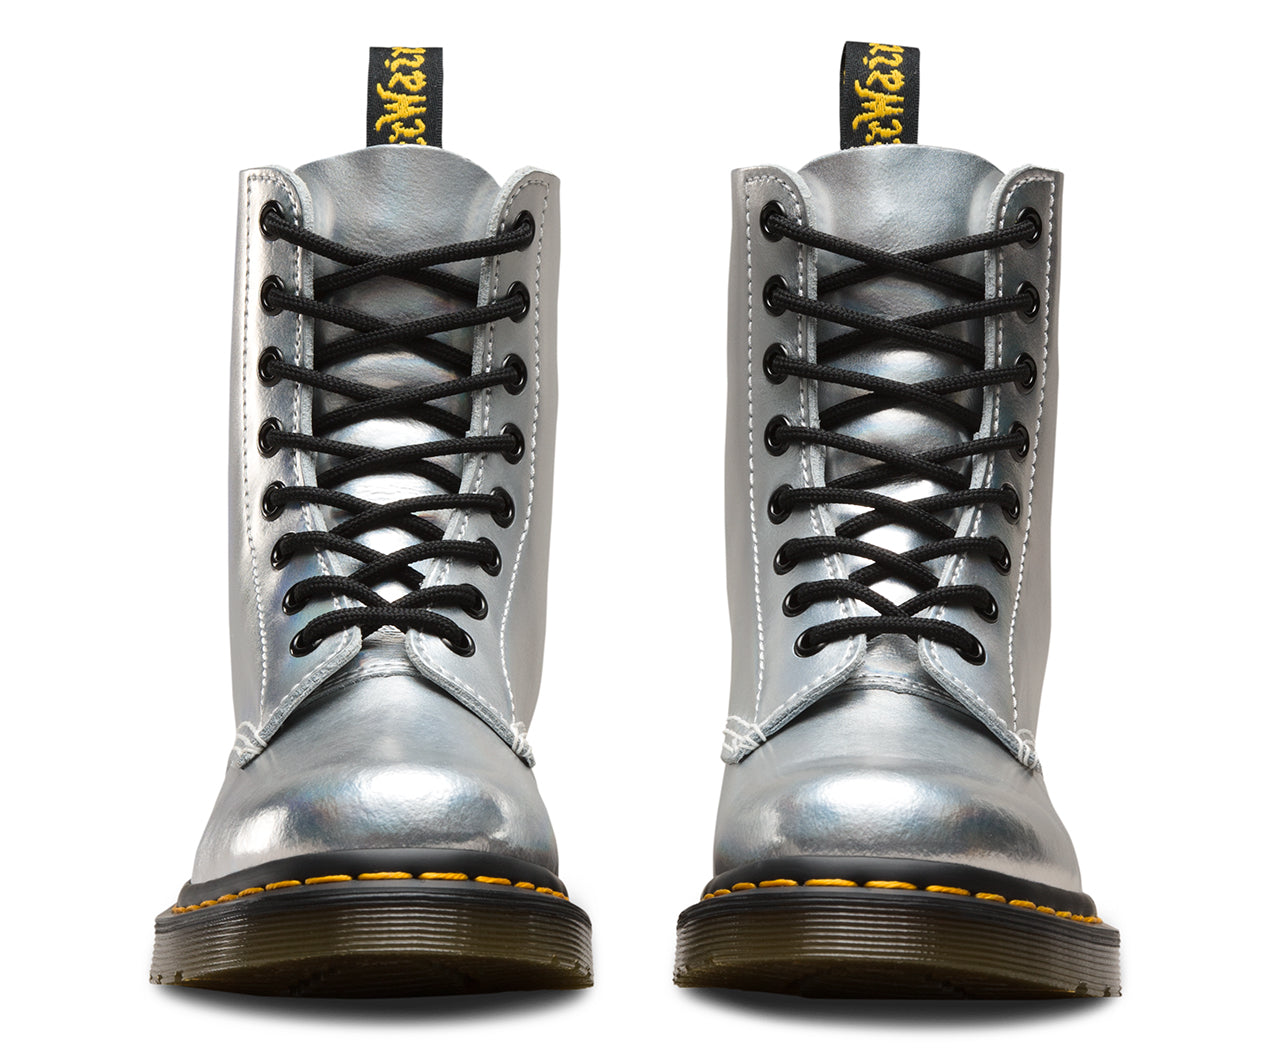 DR. MARTENS ICED METALLIC 1460 PASCAL